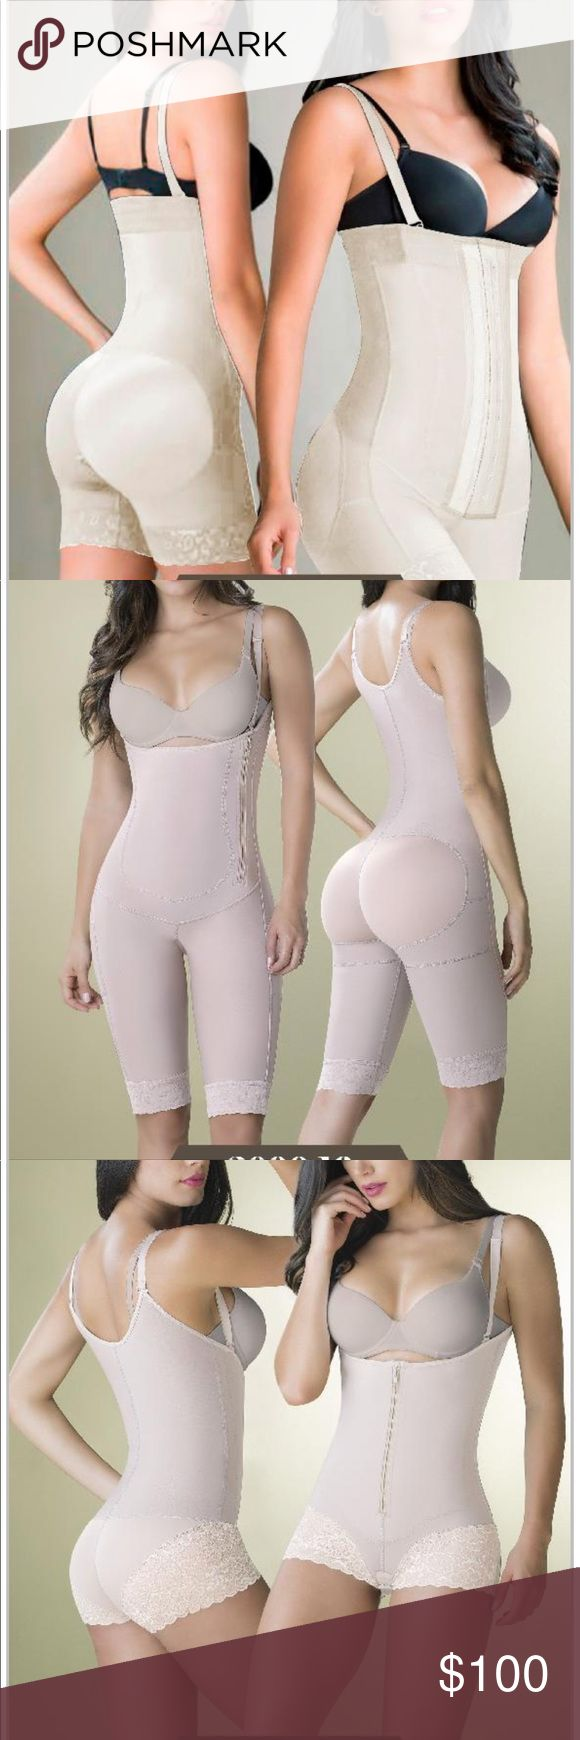 Colombian girdles Brand new 100% original from Colombia Intimates & Sleepwear Shapewear